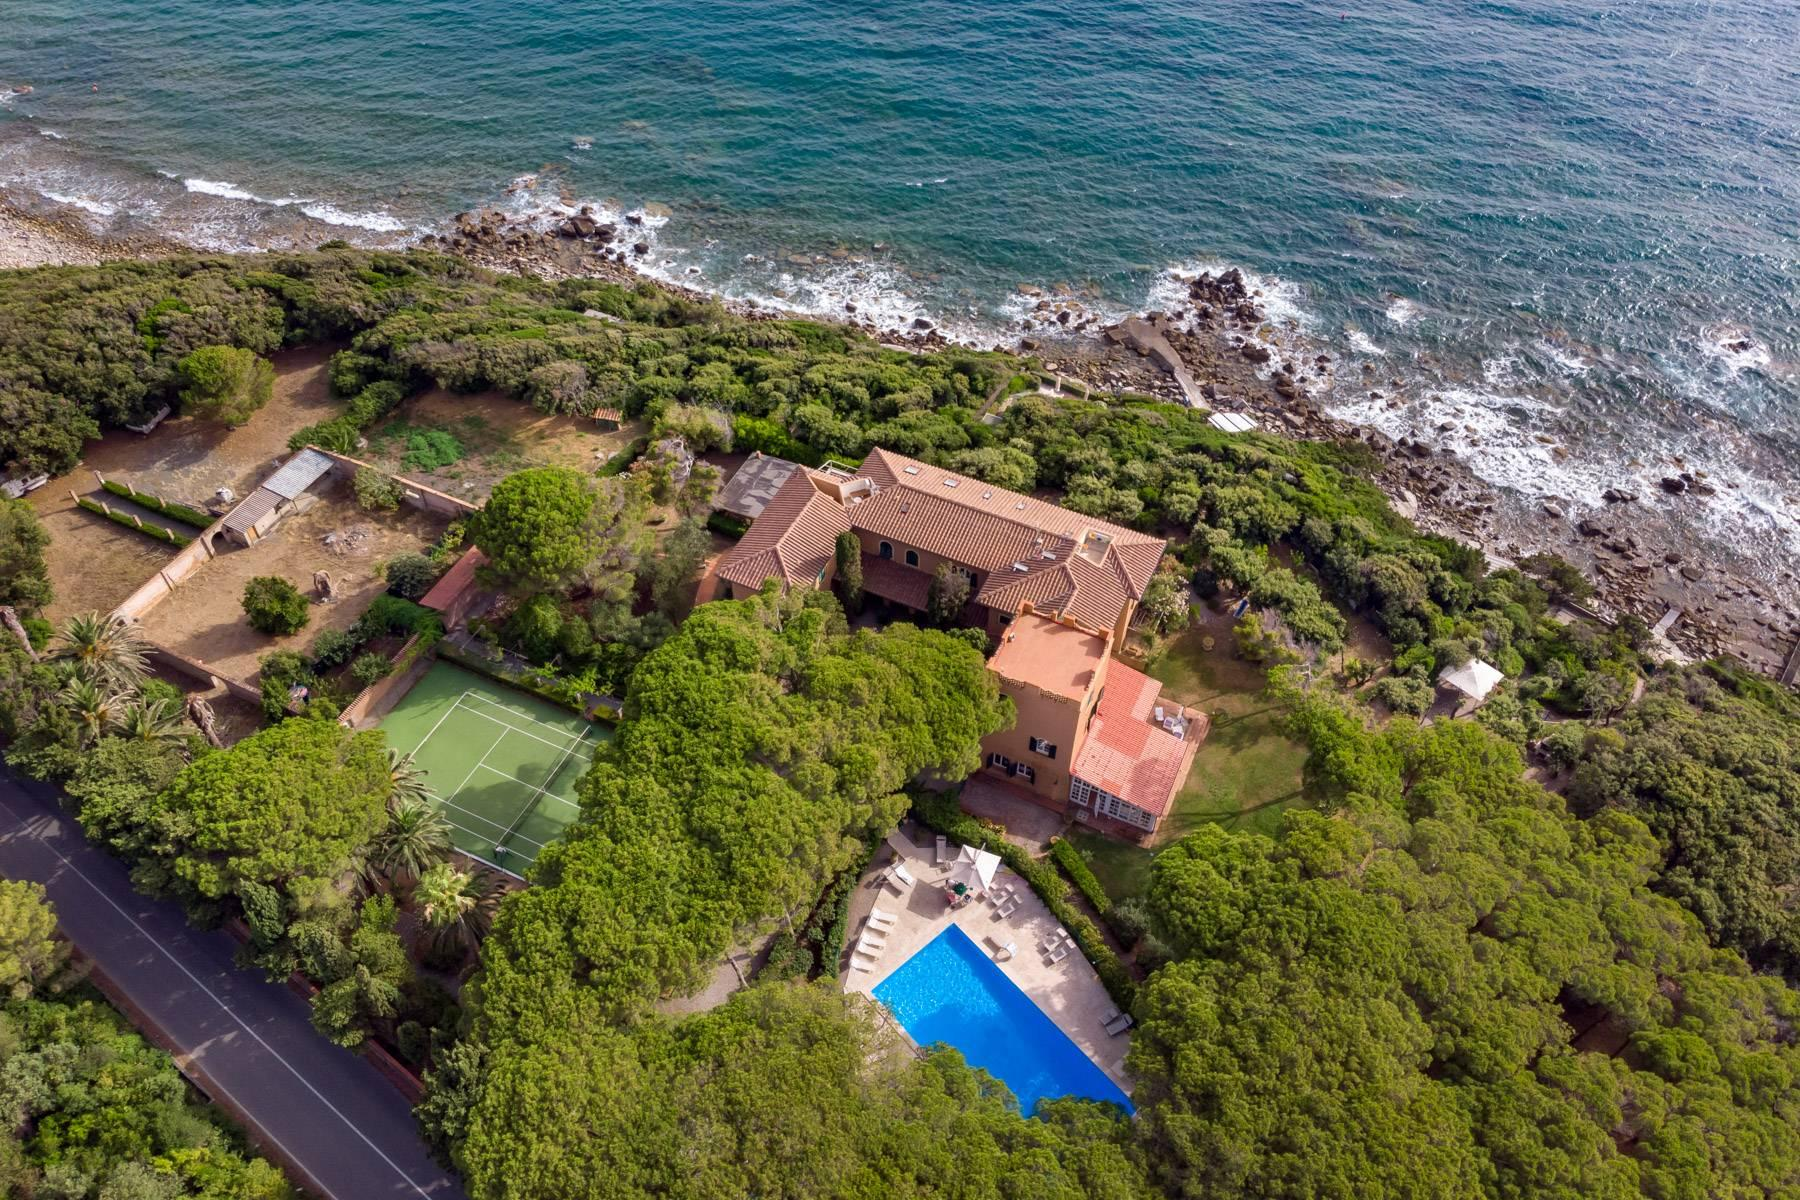 Apartment with private garden and access to the sea in a historic villa - 32